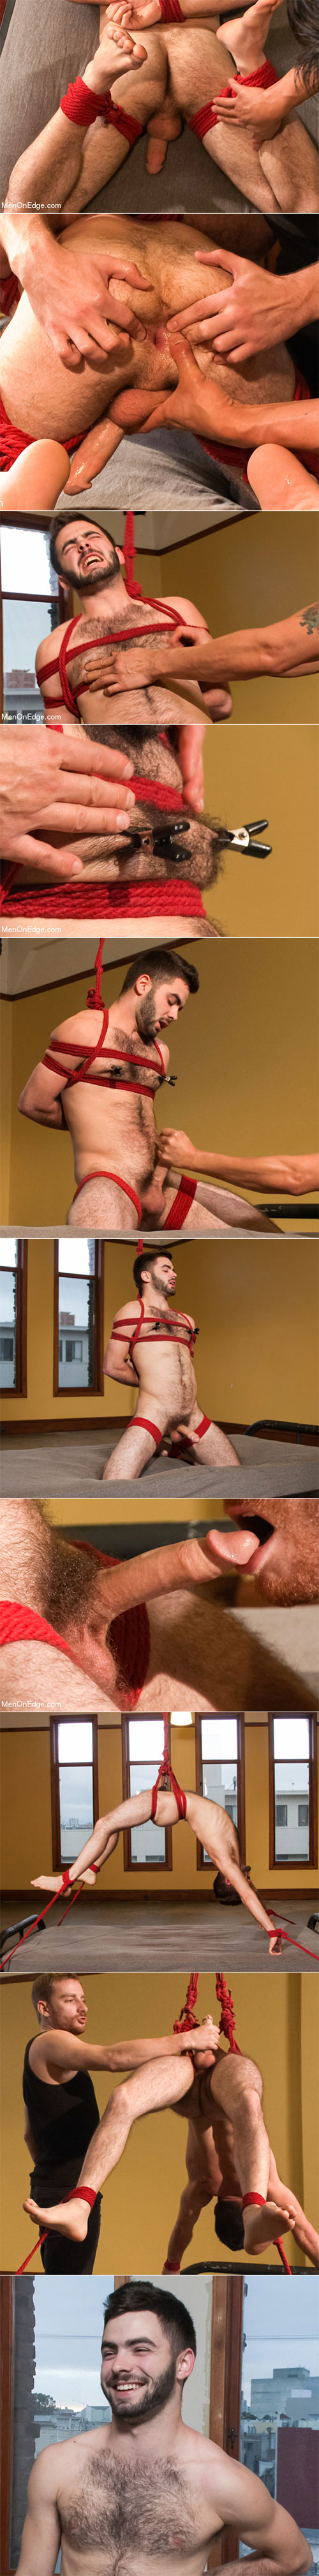 MenOnEdge: Hairy stud Josh Long tied up and edged for the first time